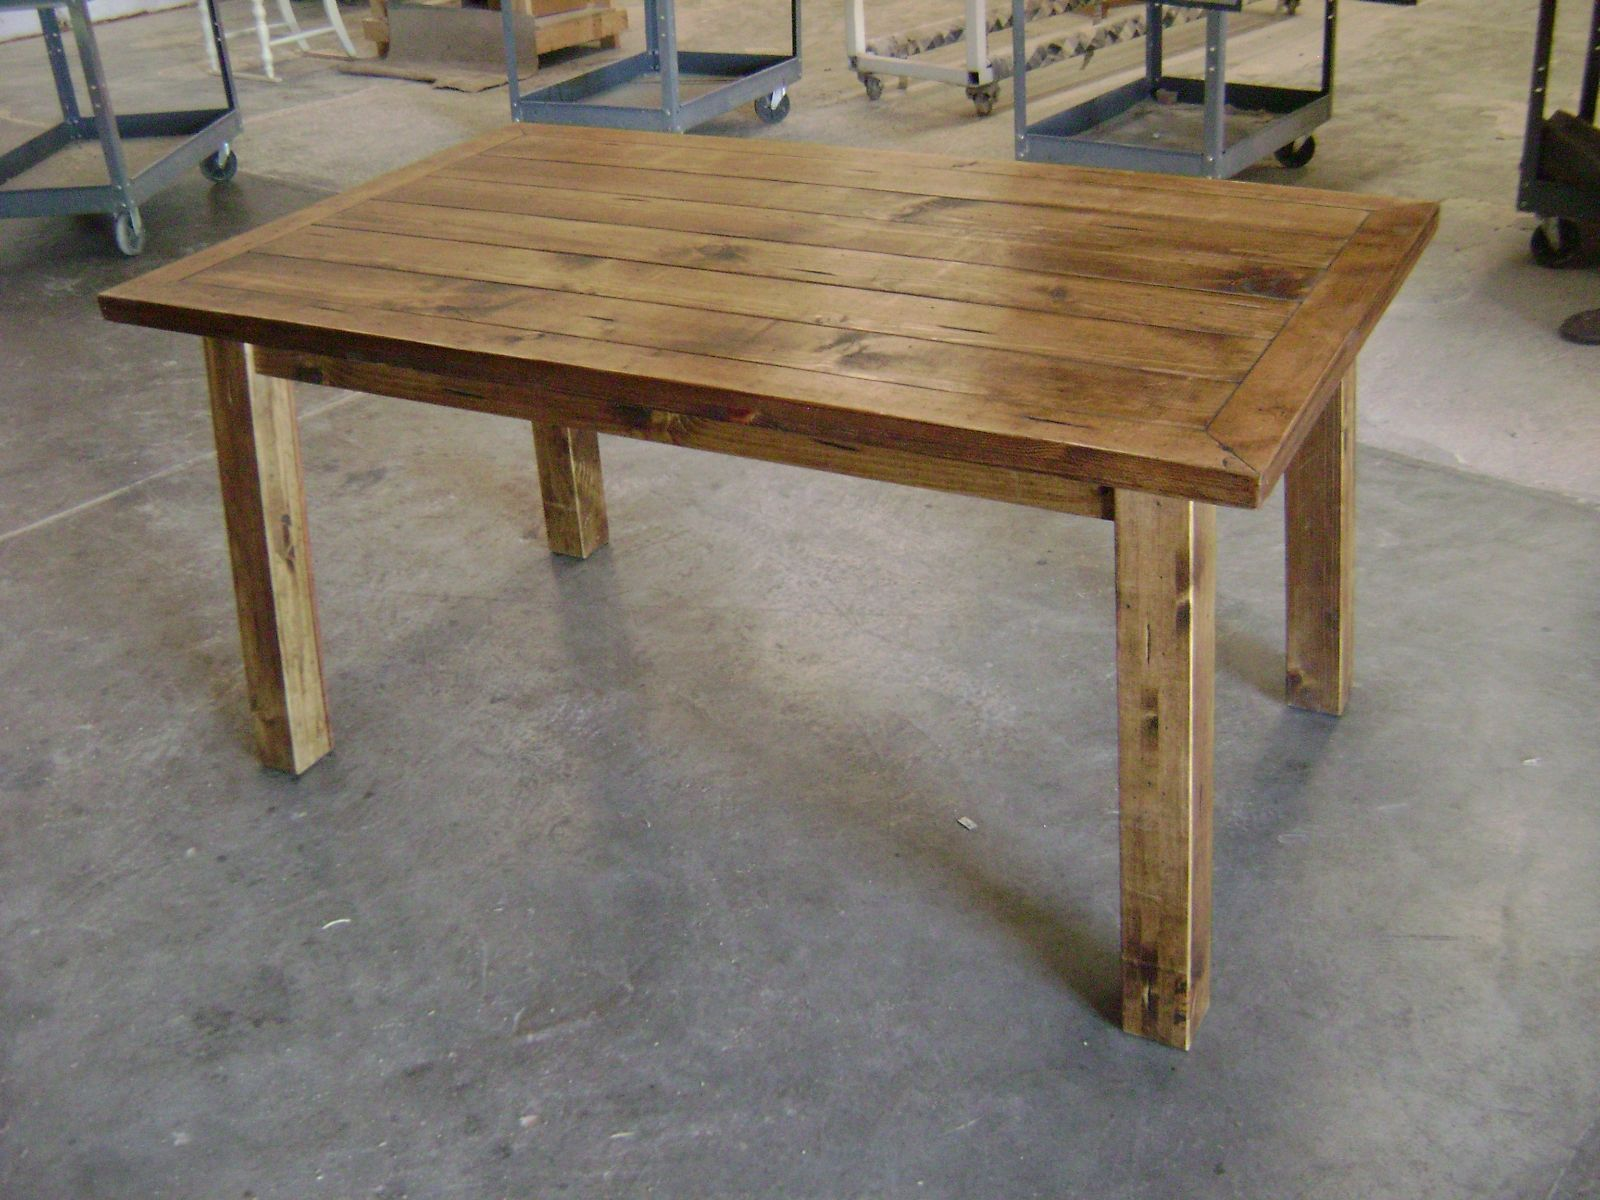 Super Custom Rustic Pine Dining Table by Philip Skinner Furniture  HB03